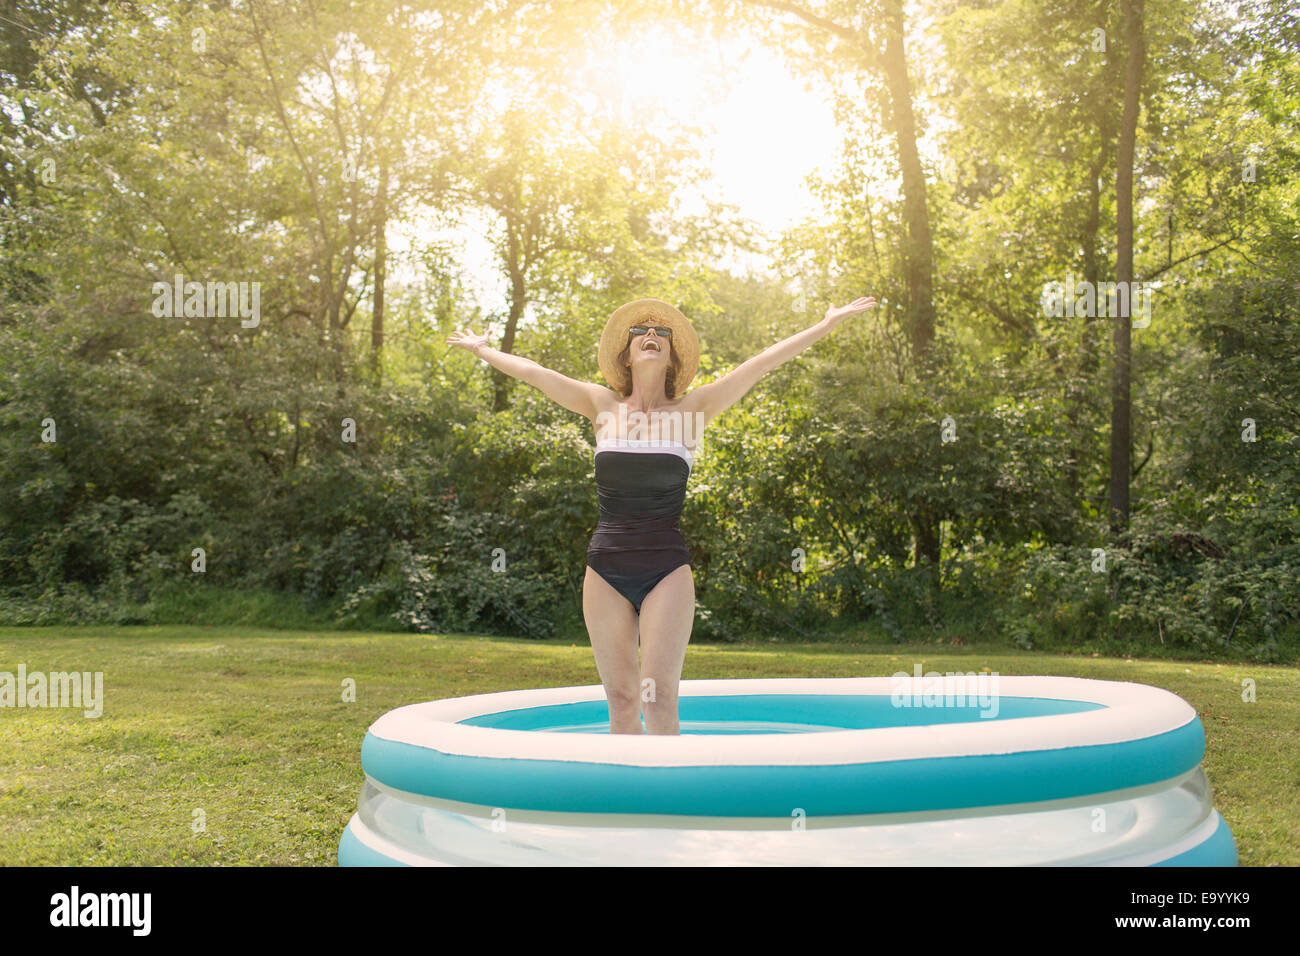 Mature woman standing in paddling pool, arms outstretched - Stock Image